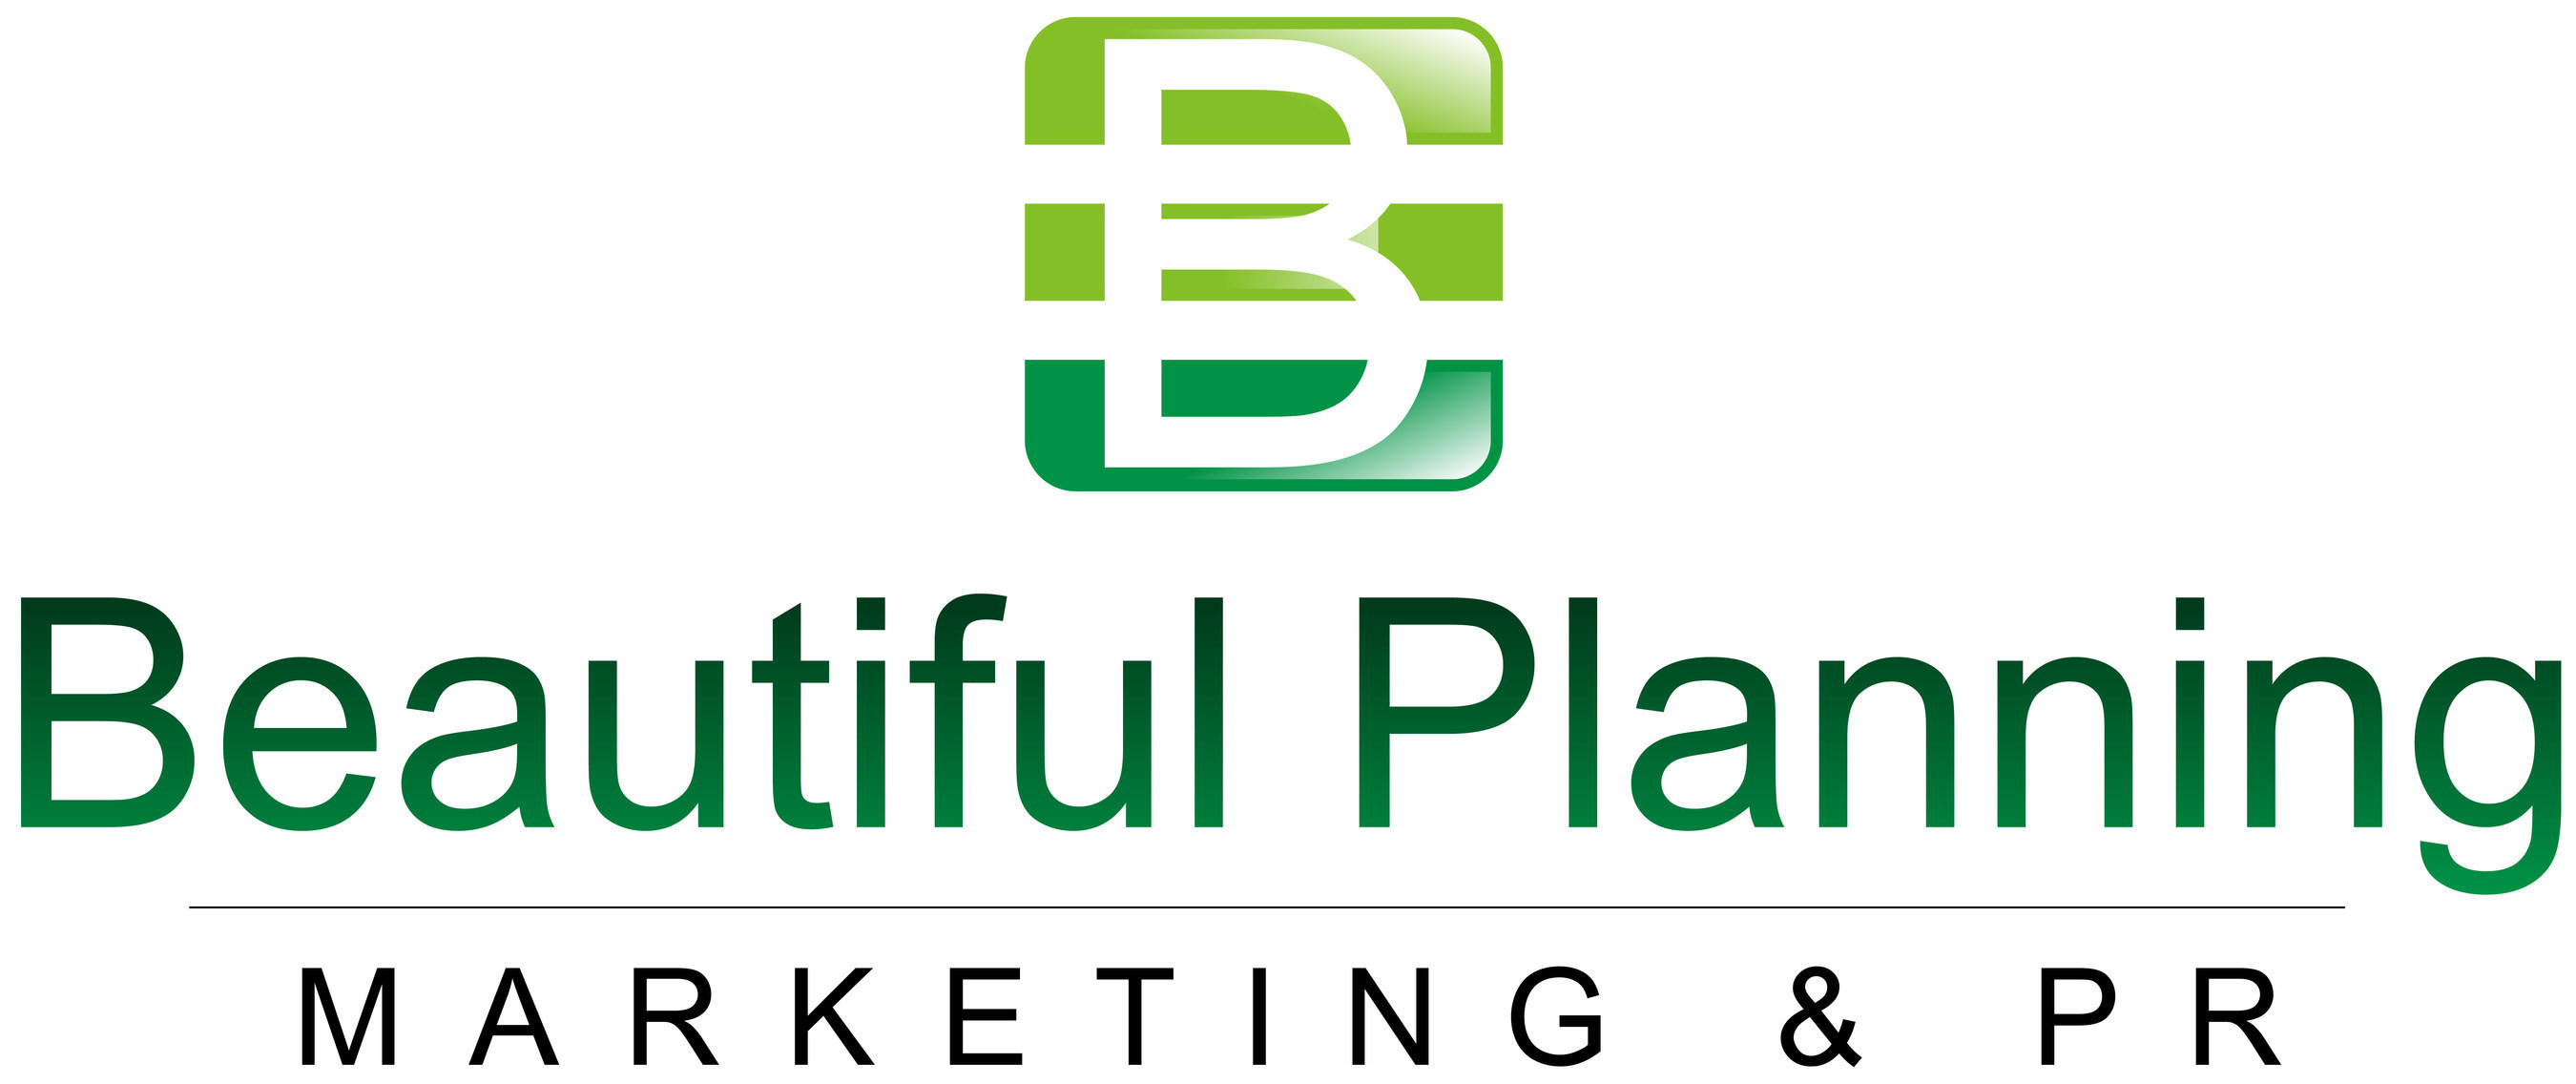 Beautiful Planning Marketing & PR Firm Adds Full Scale Fashion Show Event Production and Social Media to its List of Services